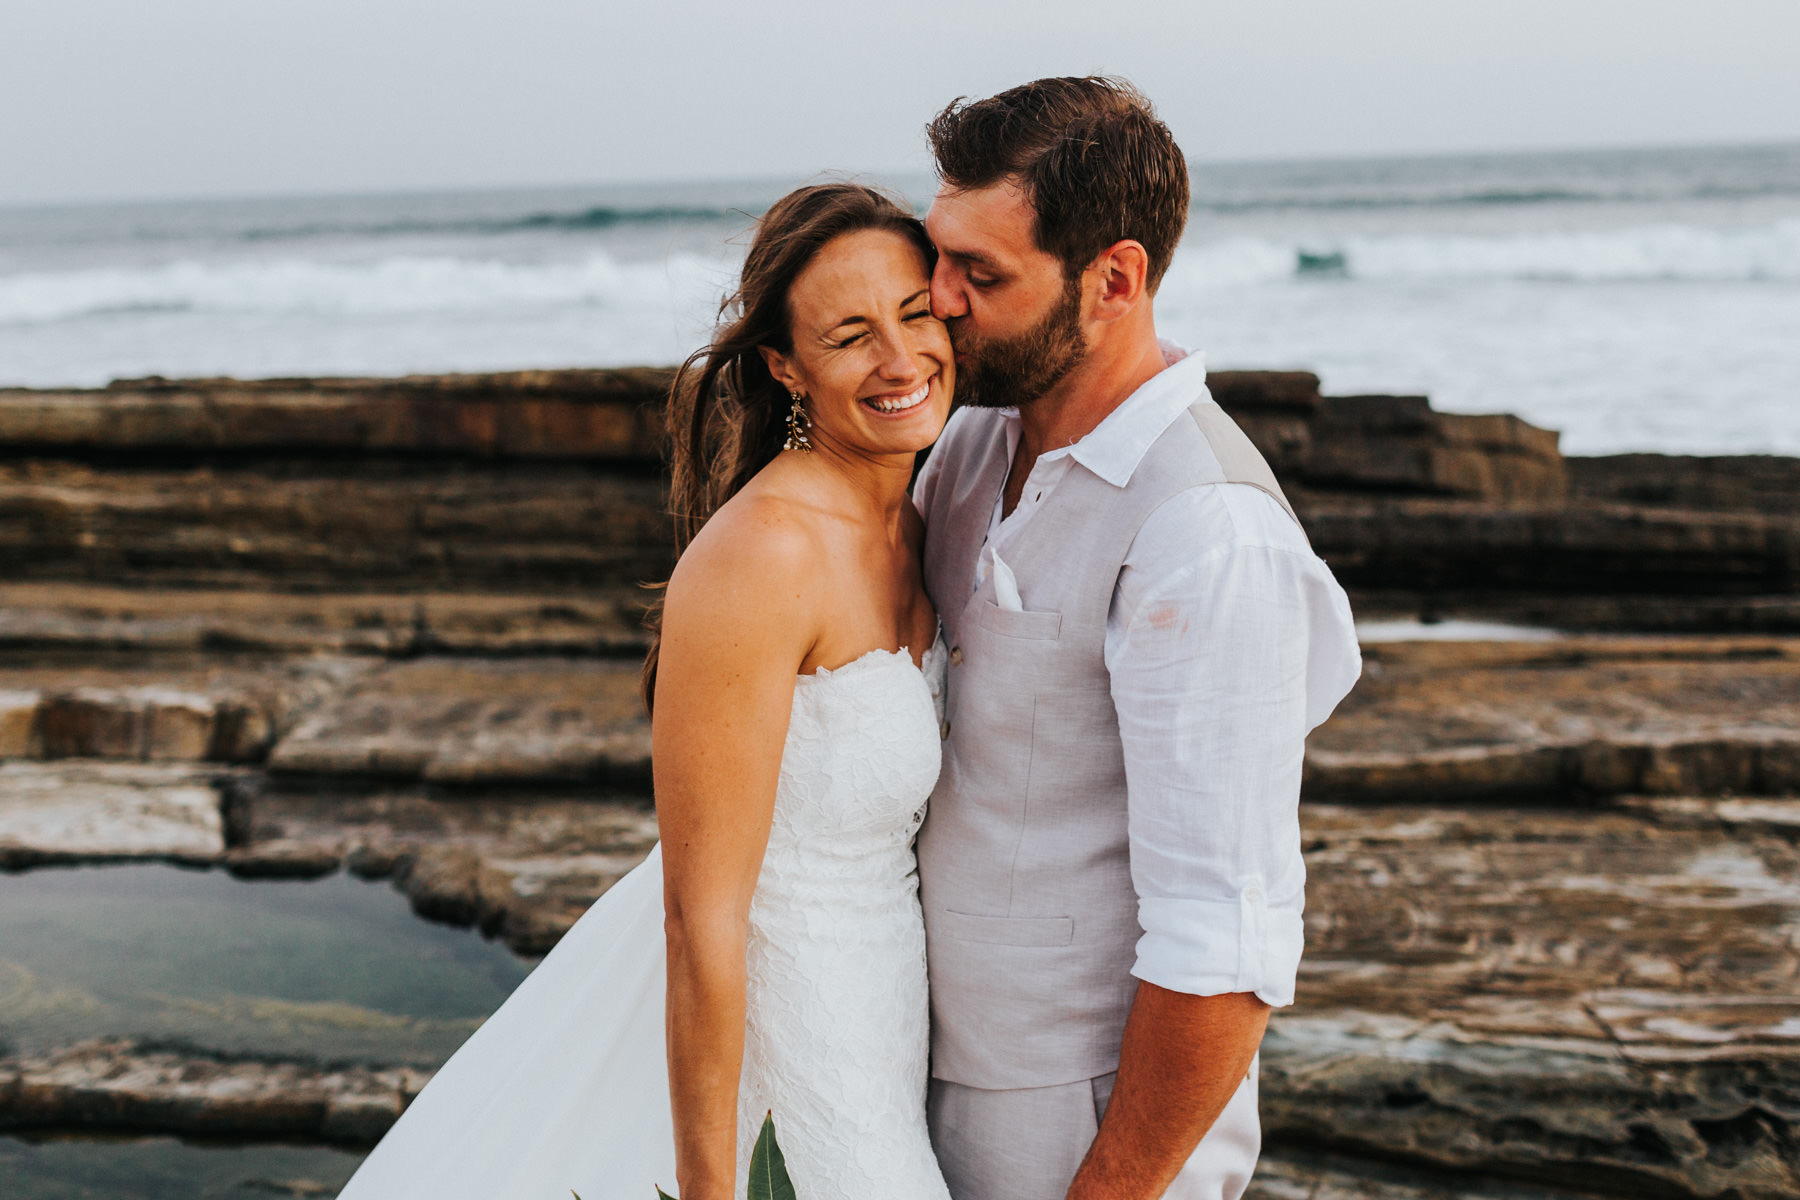 beach wedding photography - Costa Rica